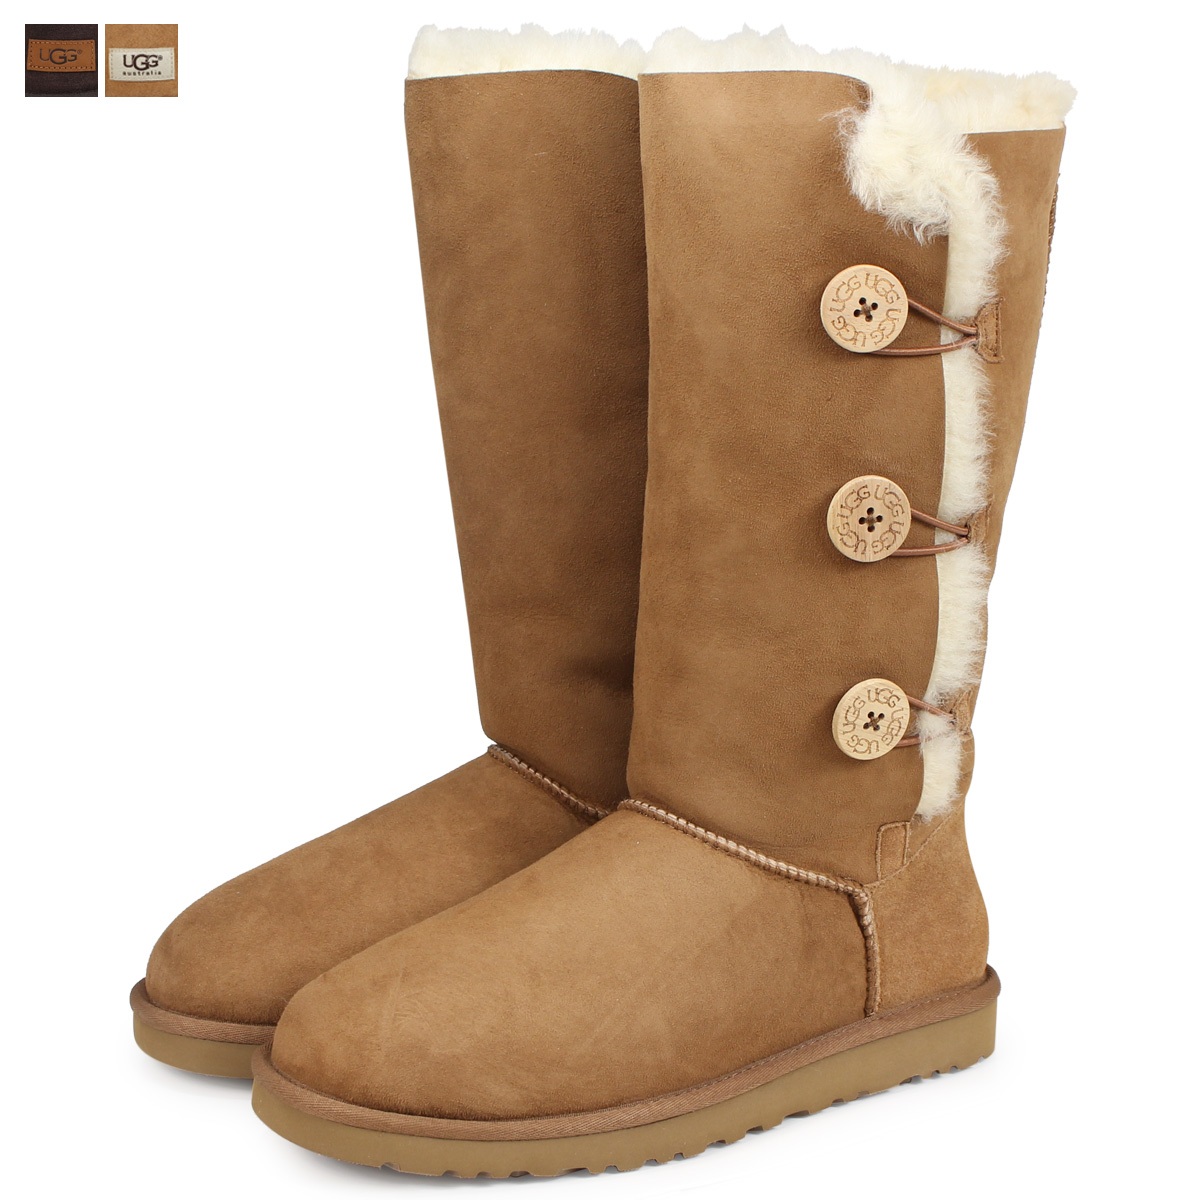 42139f637b5 アグ UGG Lady's WOMENS BAILEY BUTTON TRIPLET 2 mouton boots Bailey button  triplet 2 1873 1016227